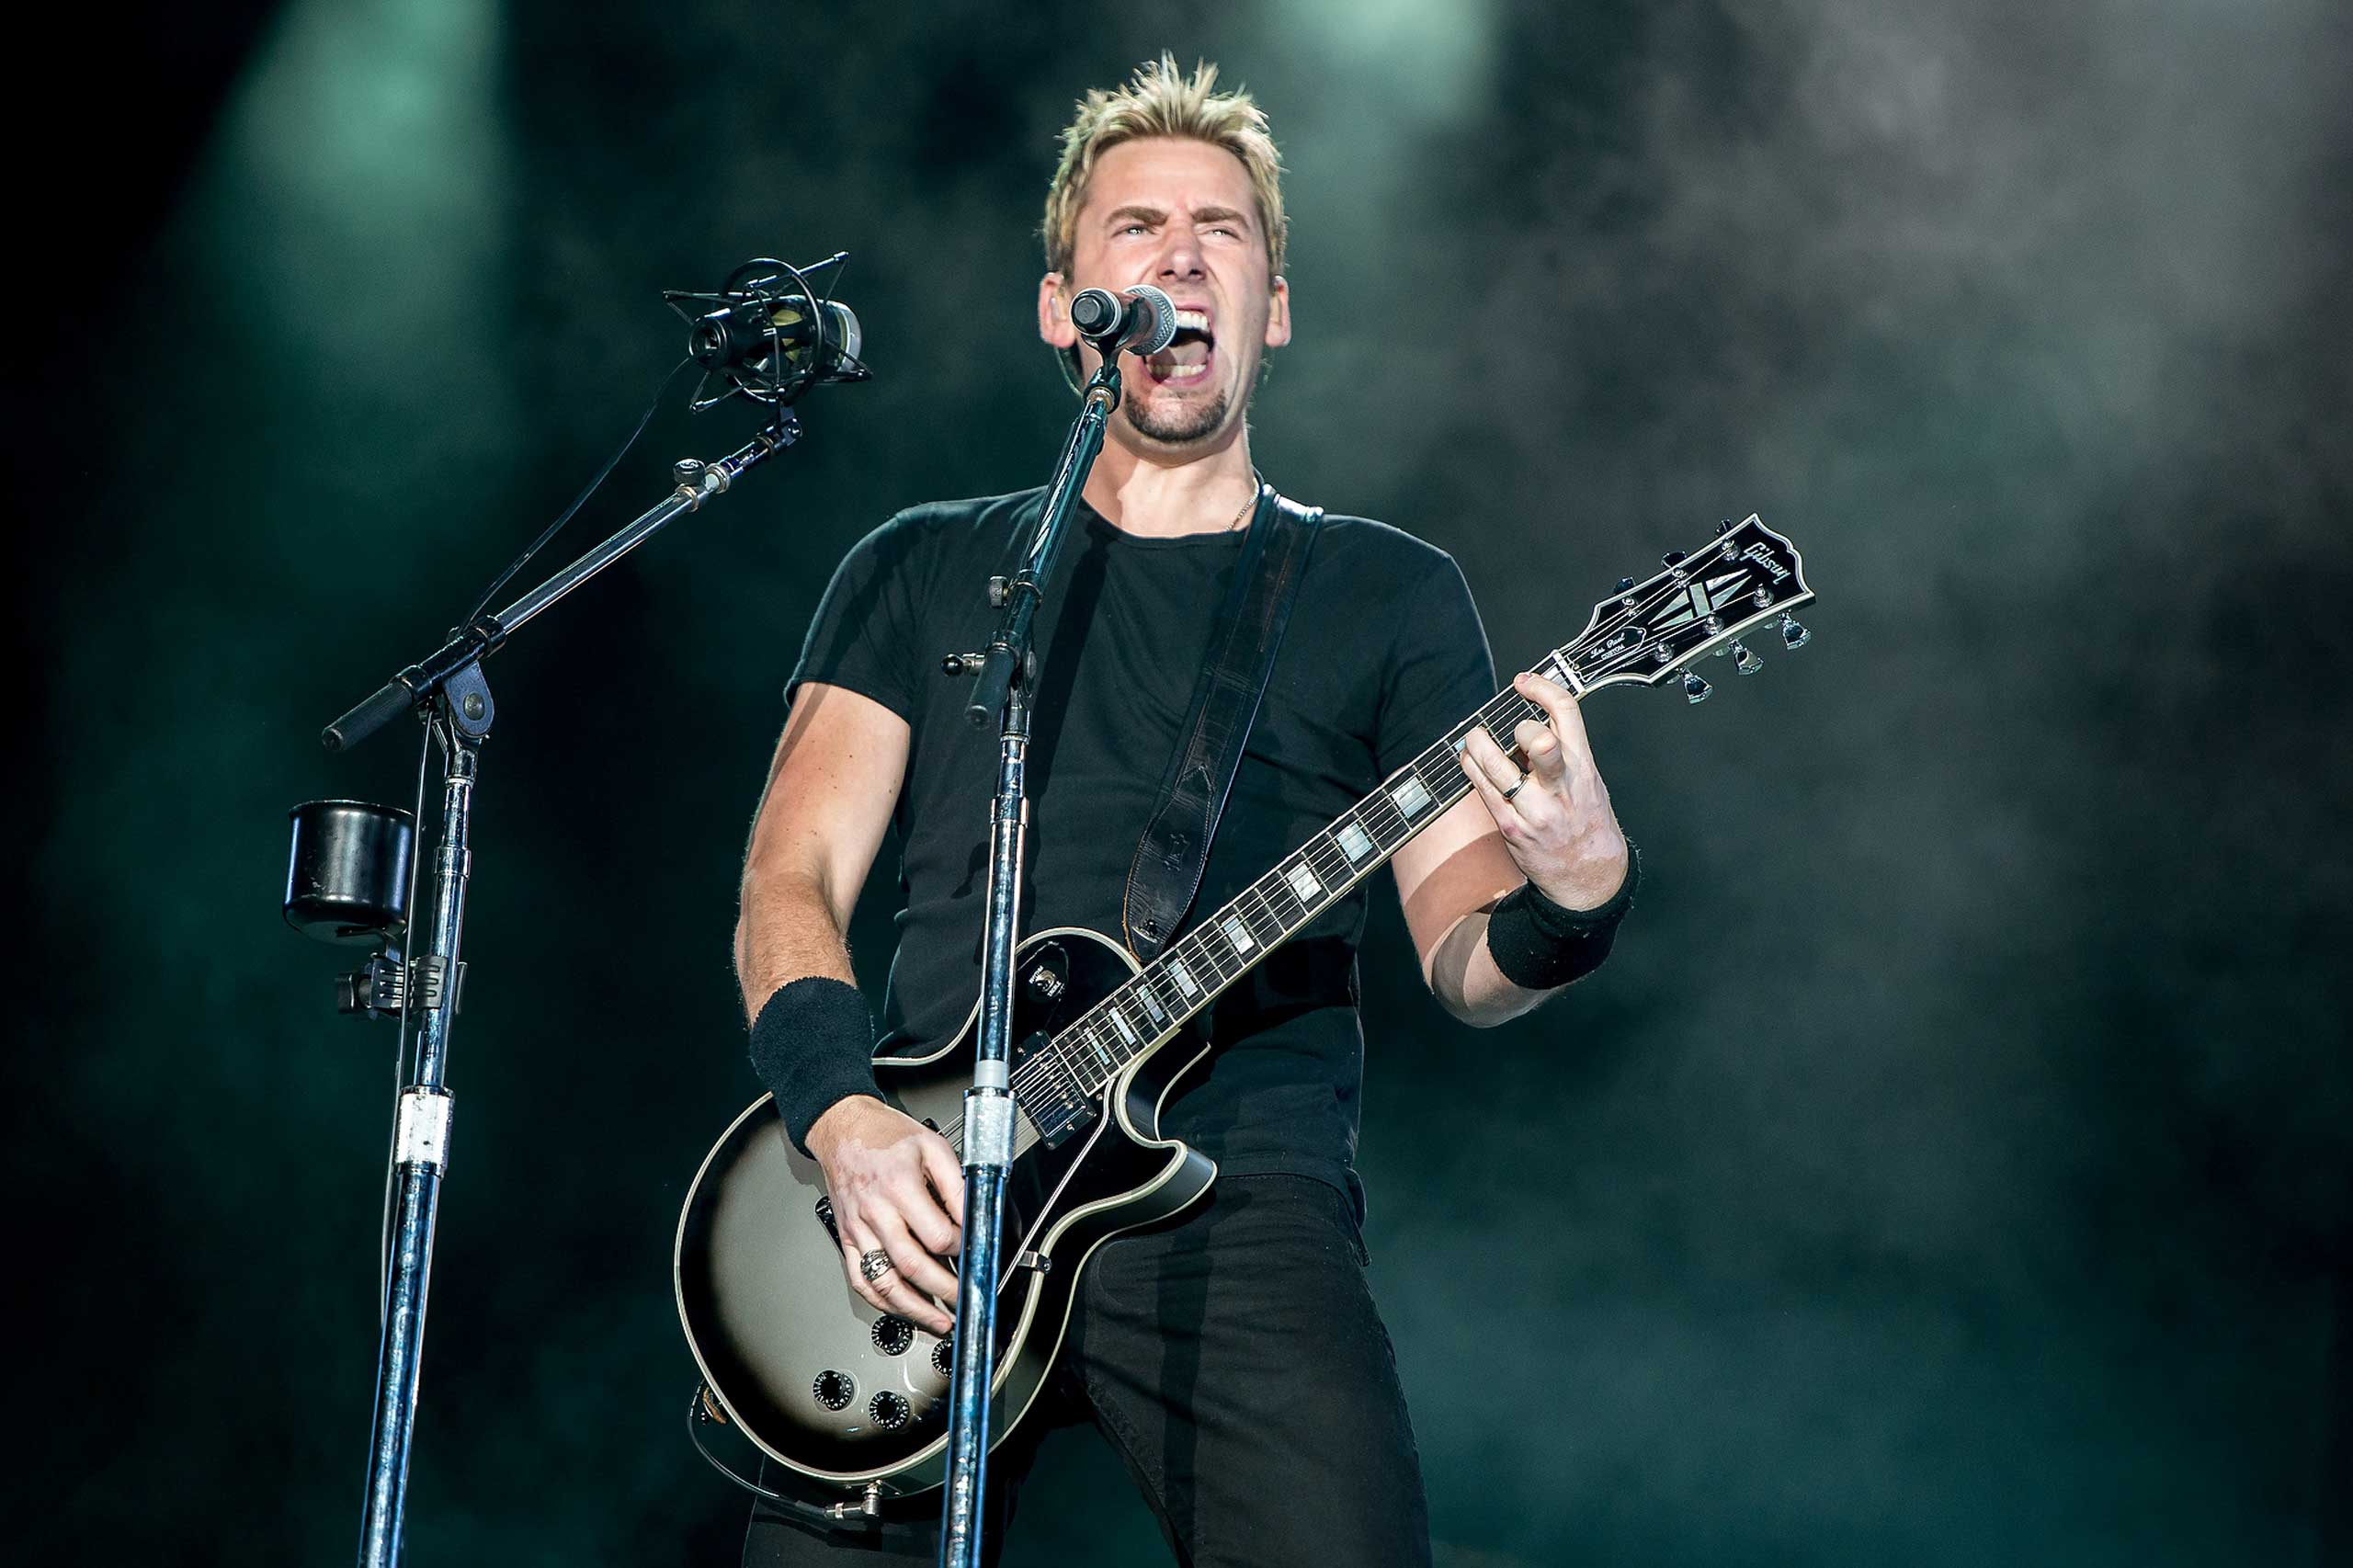 Chad Kroeger of Nickelback performs on stage during a concert in the Rock in Rio Festival in Rio de Janeiro in 2013.